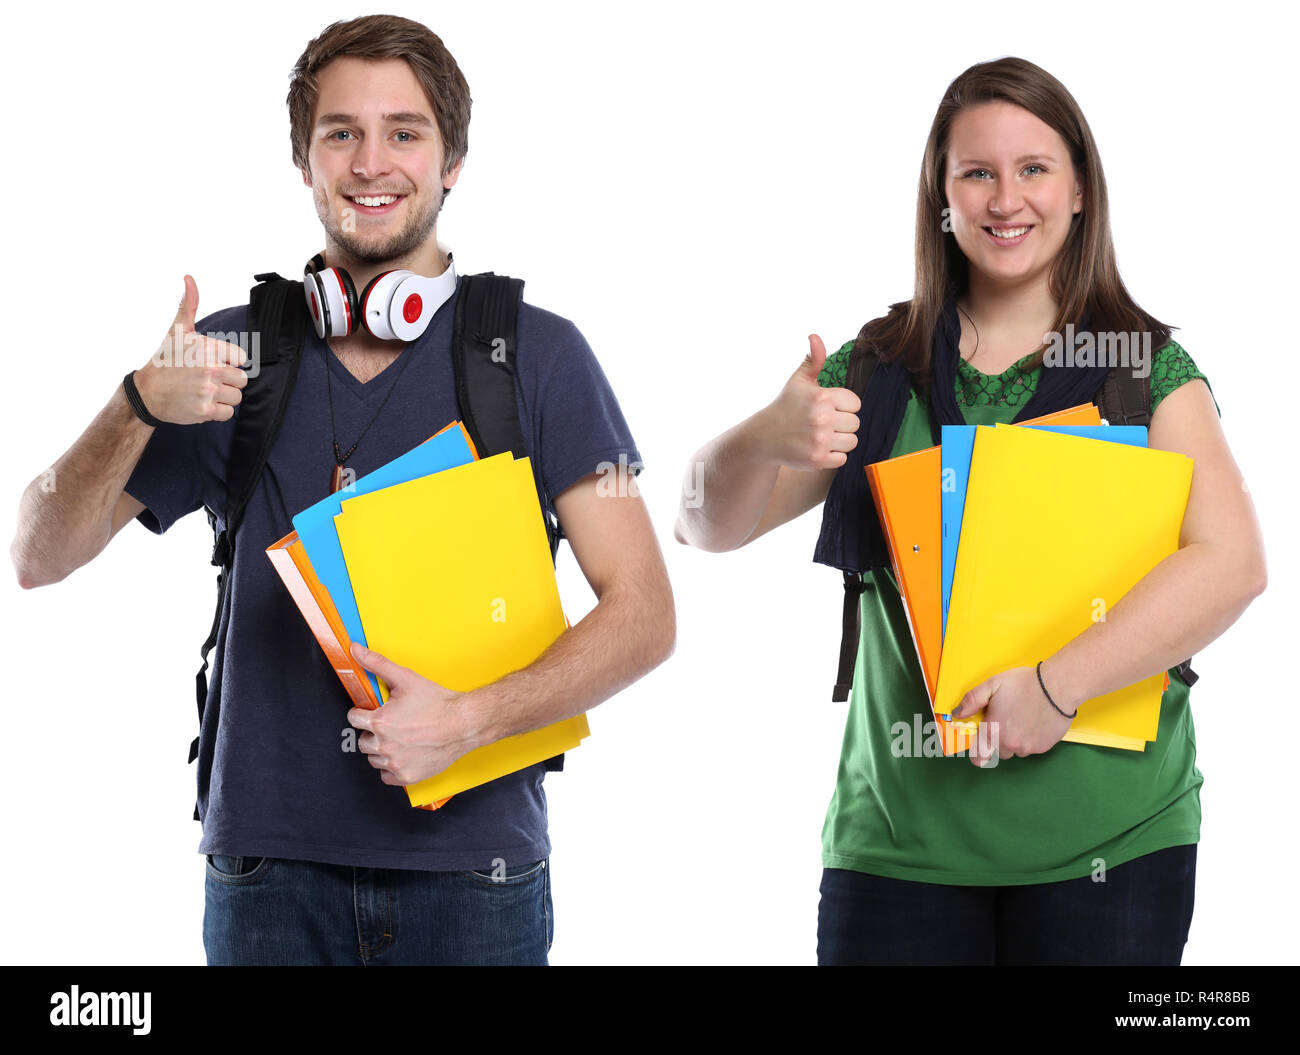 student thumbs up young young woman man young laughing youthful casual - Stock Image